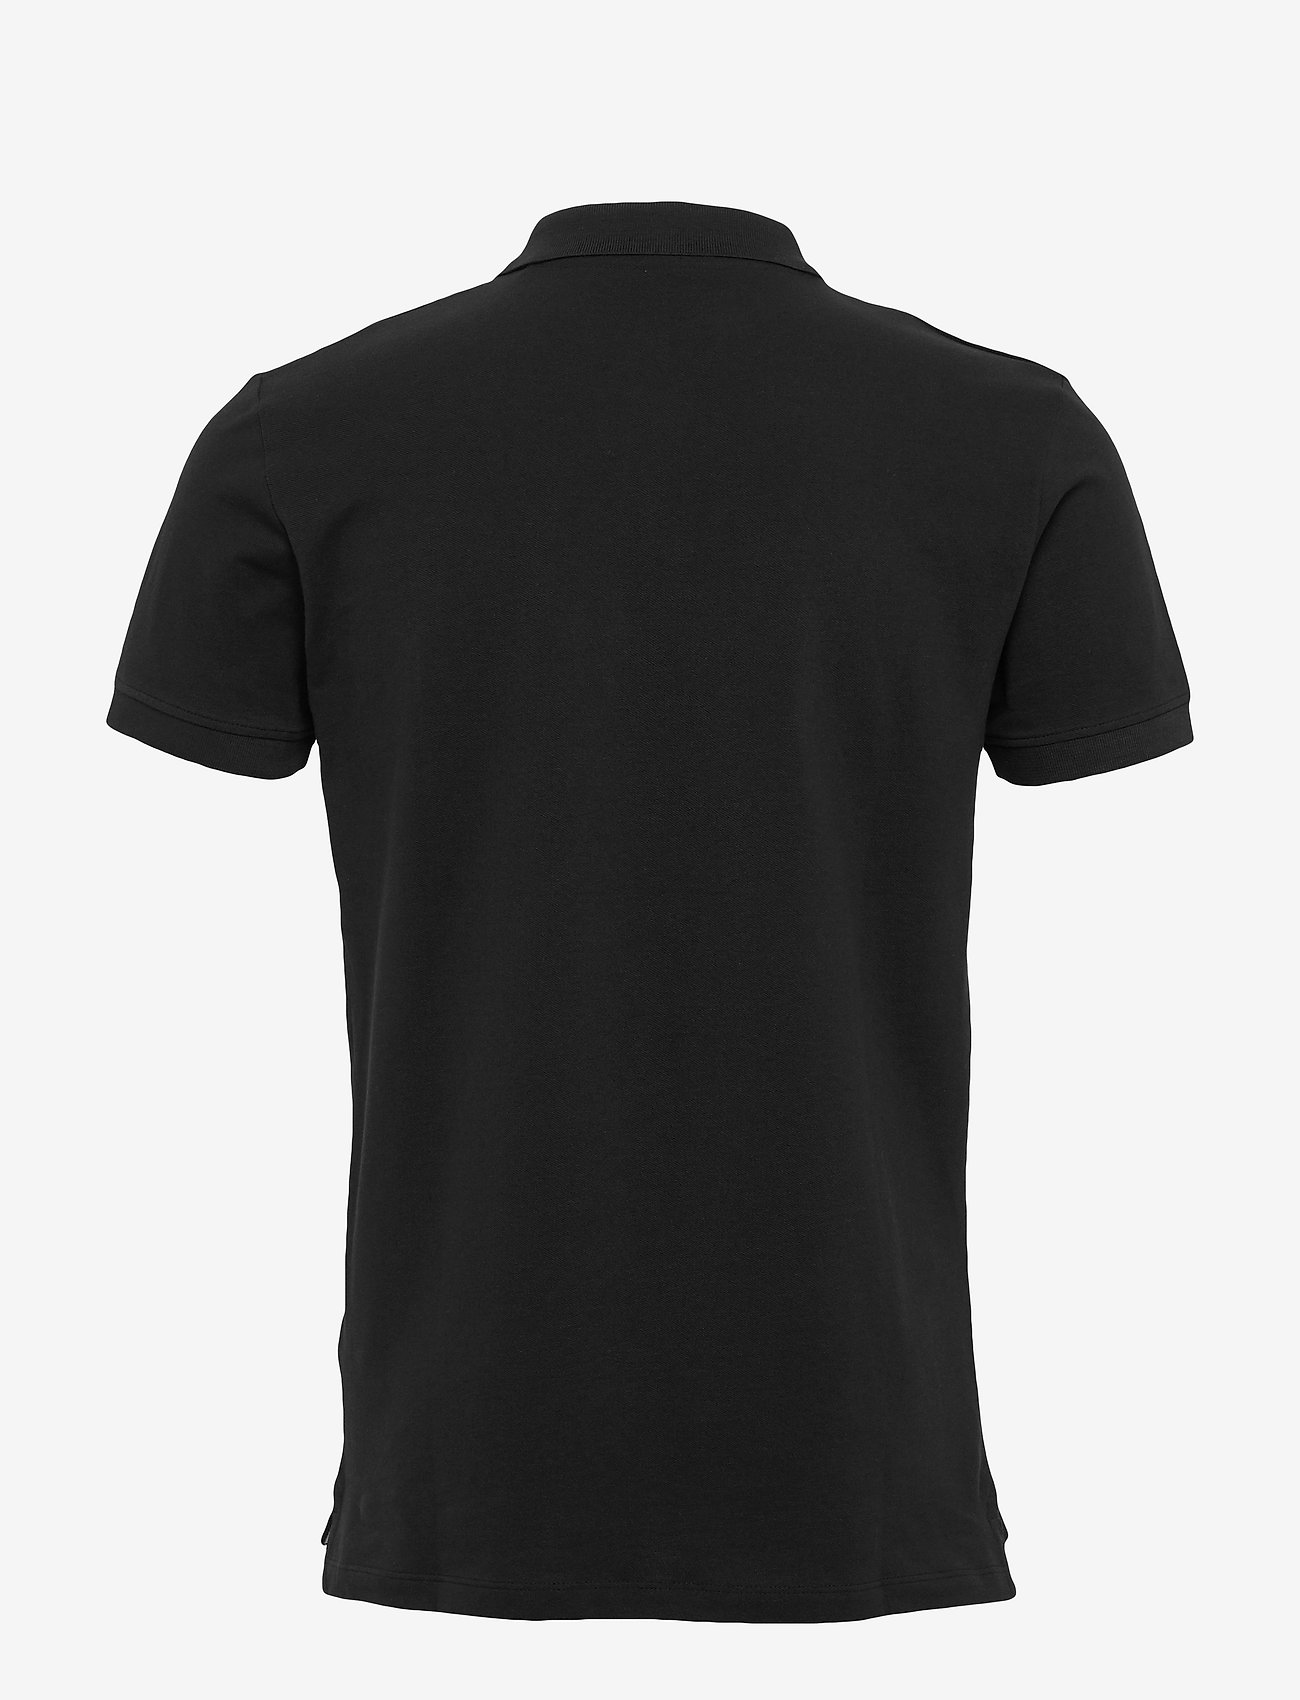 Esprit Casual - Polo shirts - korte mouwen - black - 1